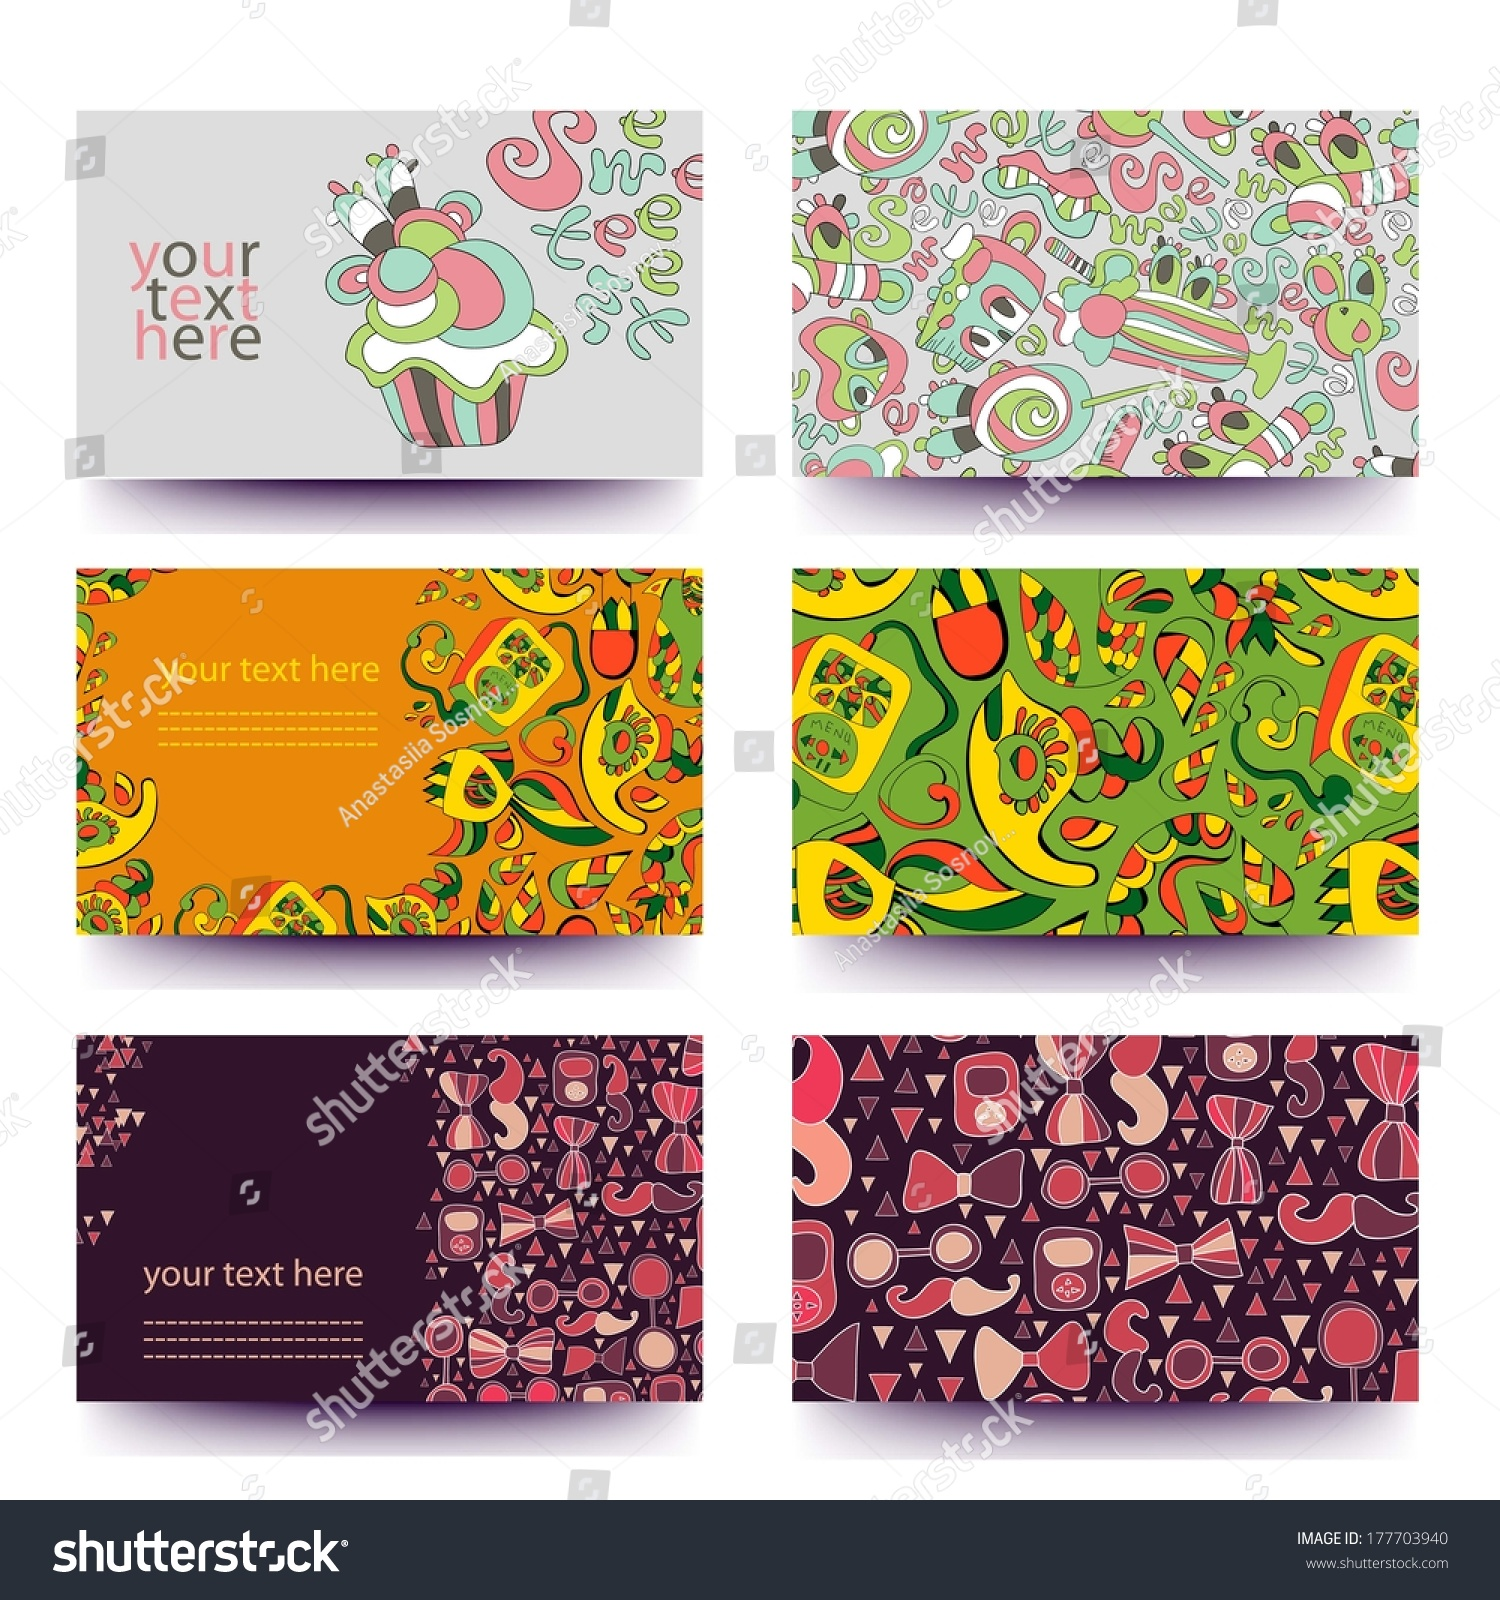 Colorful business card templatevector set bannersbanners stock colorful business card templatector set bannersnners for business cards labels magicingreecefo Gallery